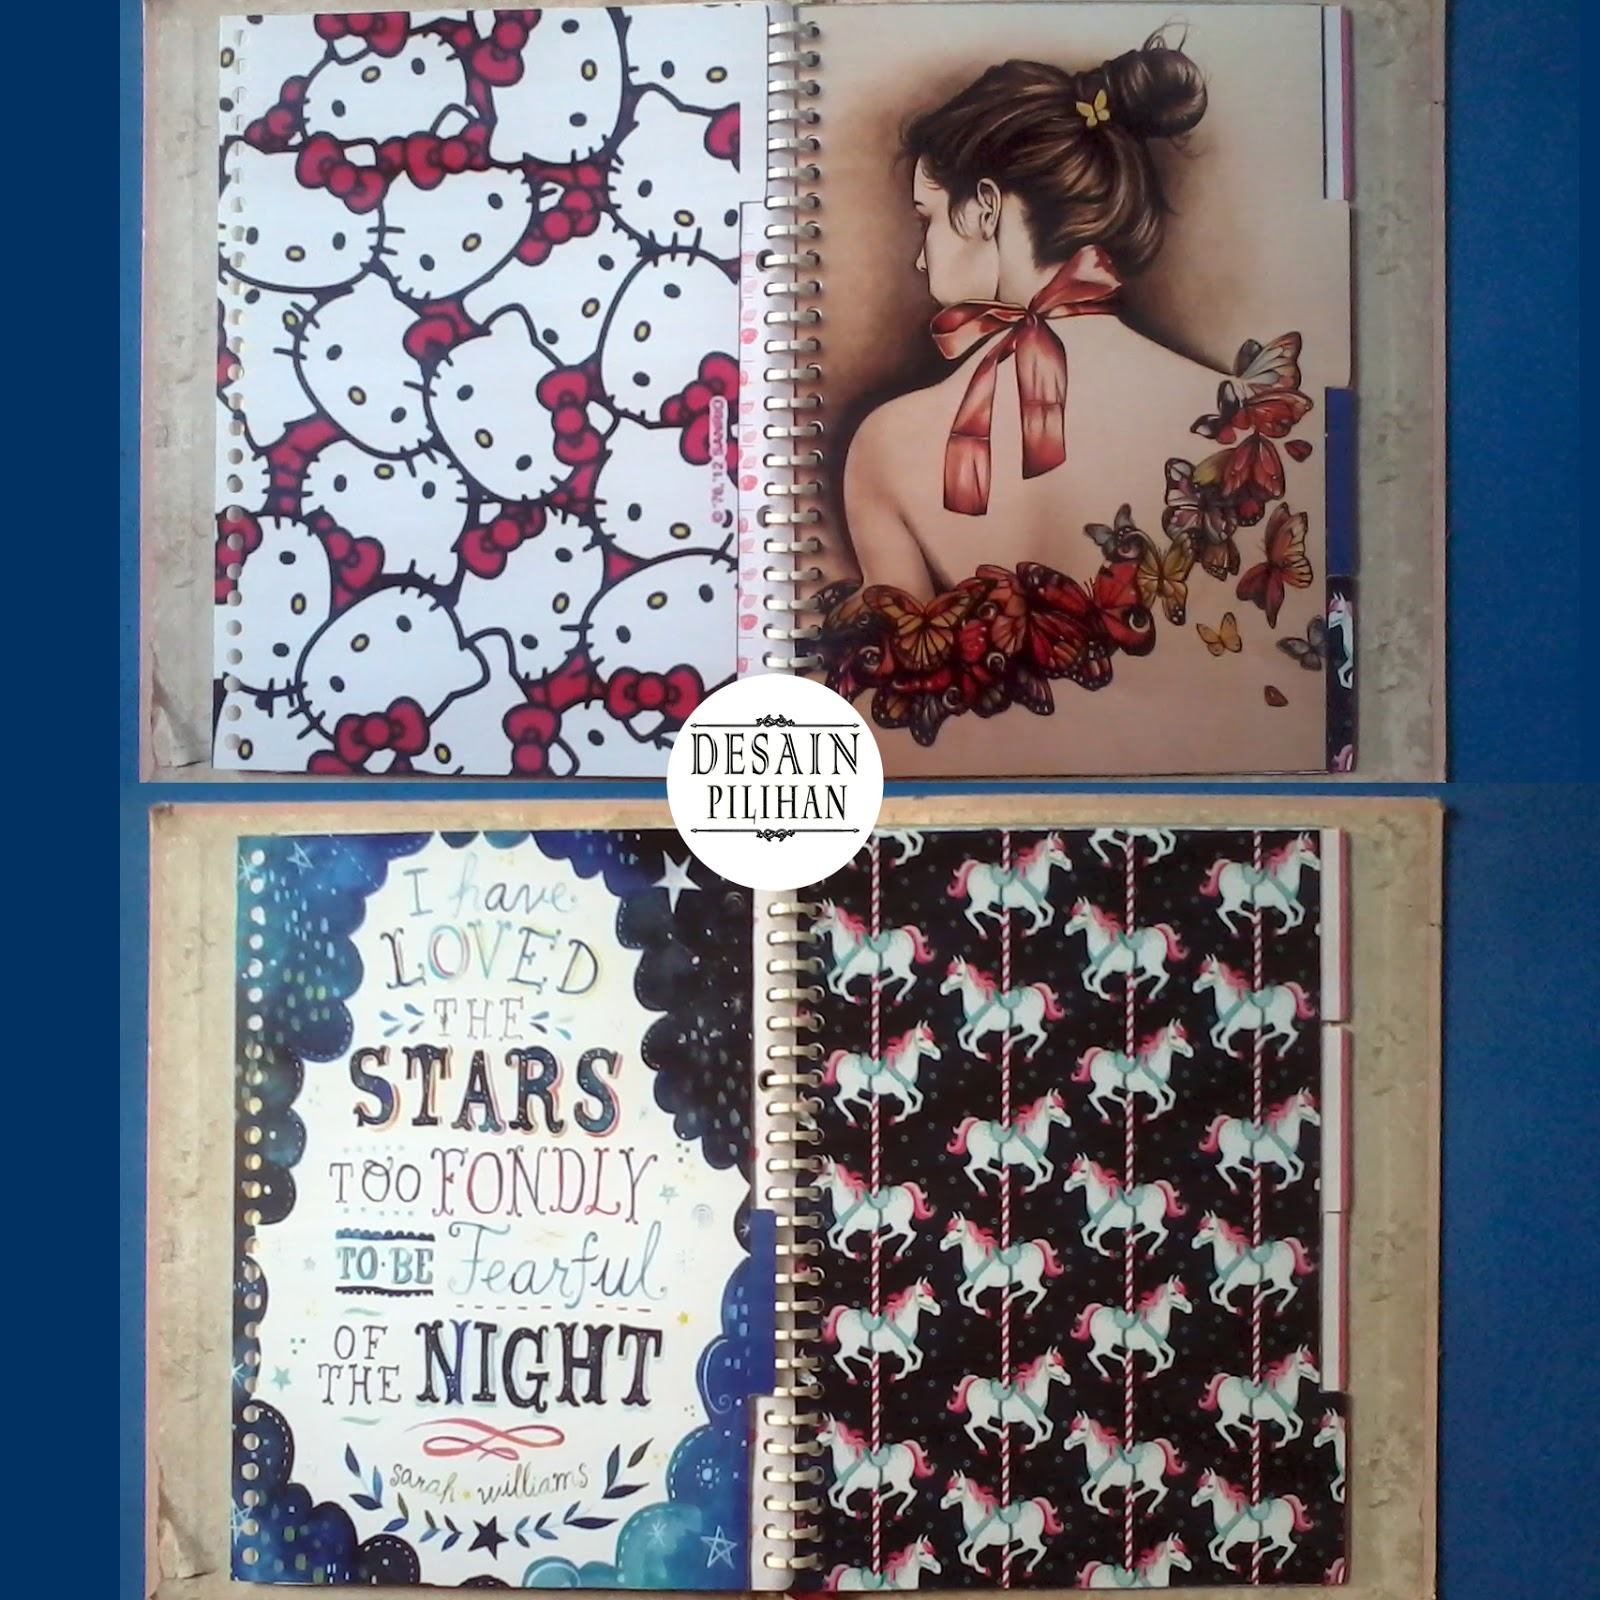 pembatas binder hello kitty, horse, girls, star